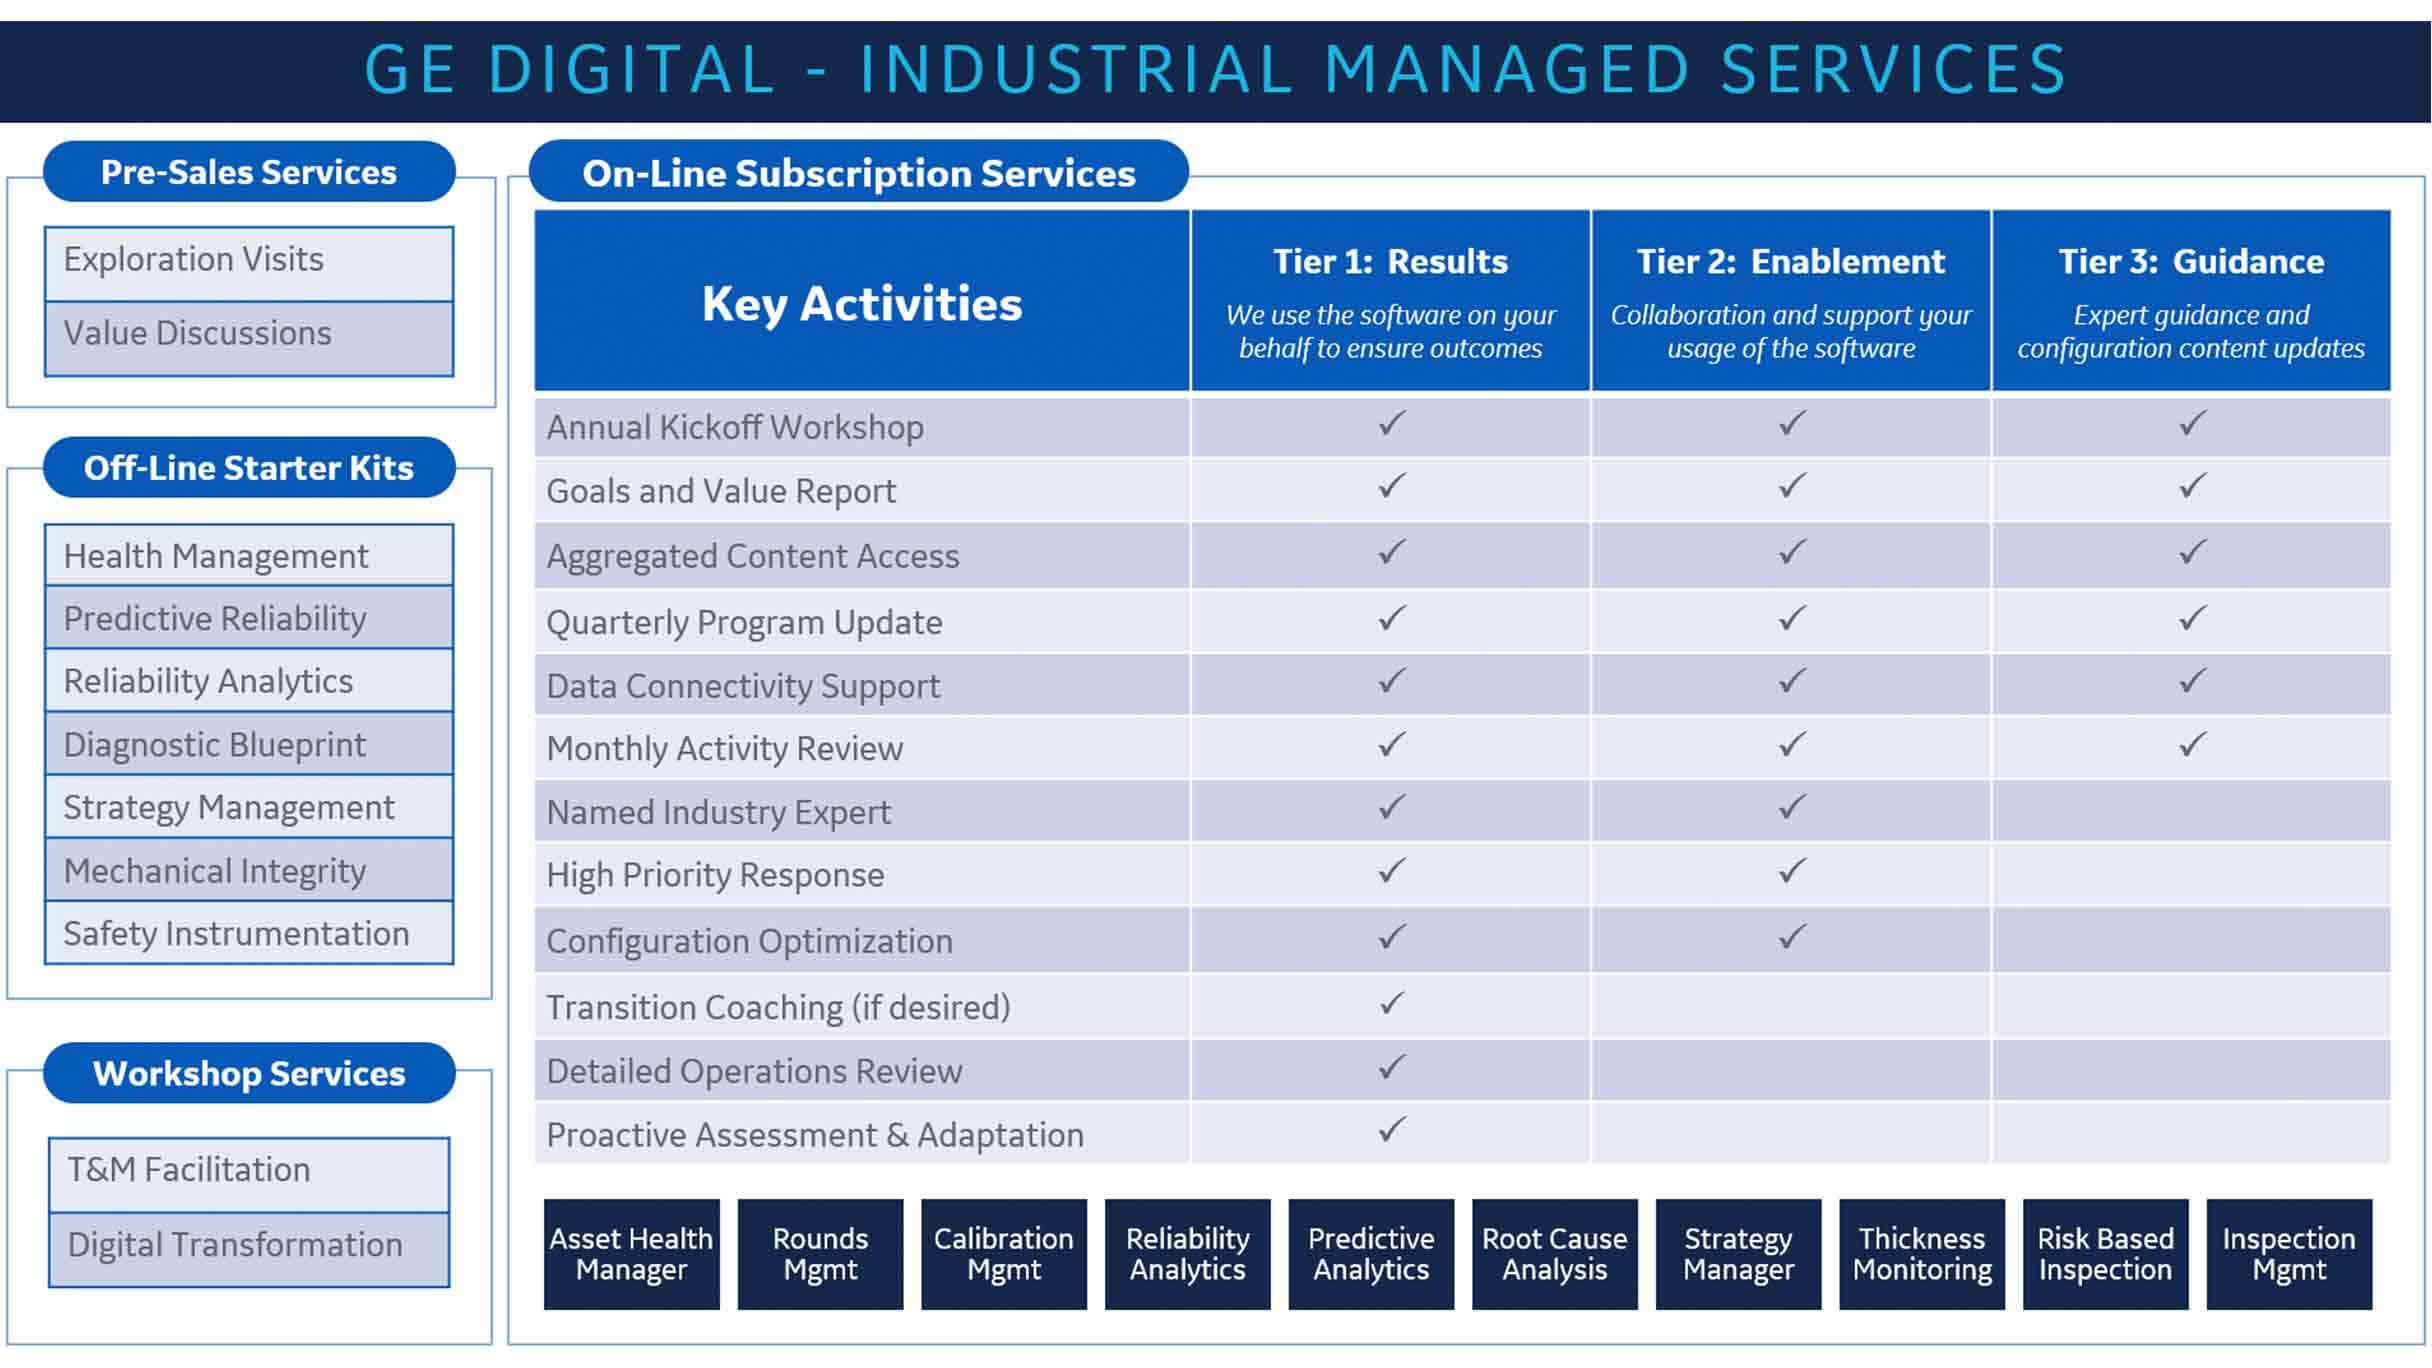 GE Digital's Industrial Managed Service Offerings including Remote MonitoringGE Digital's Industrial Managed Service Offerings including Remote Monitoring